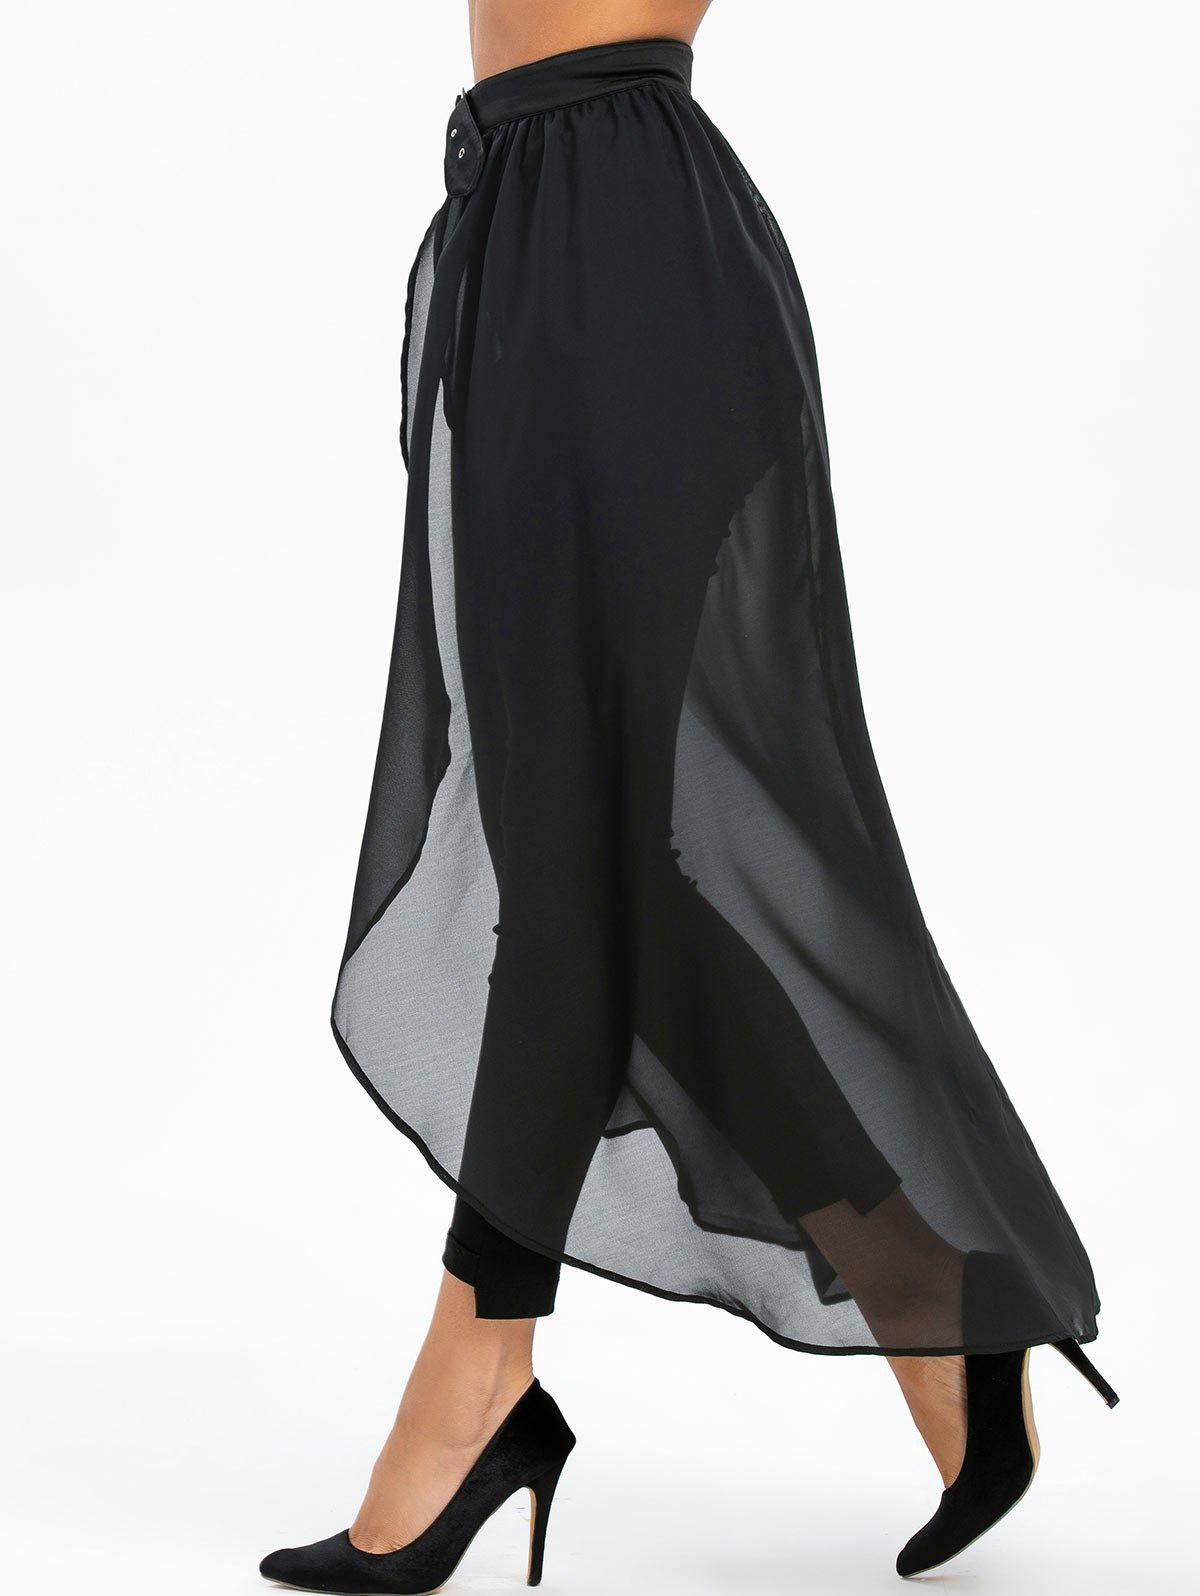 Buckle Strap High Slit See Through High Low Maxi Skirt - BLACK 3XL